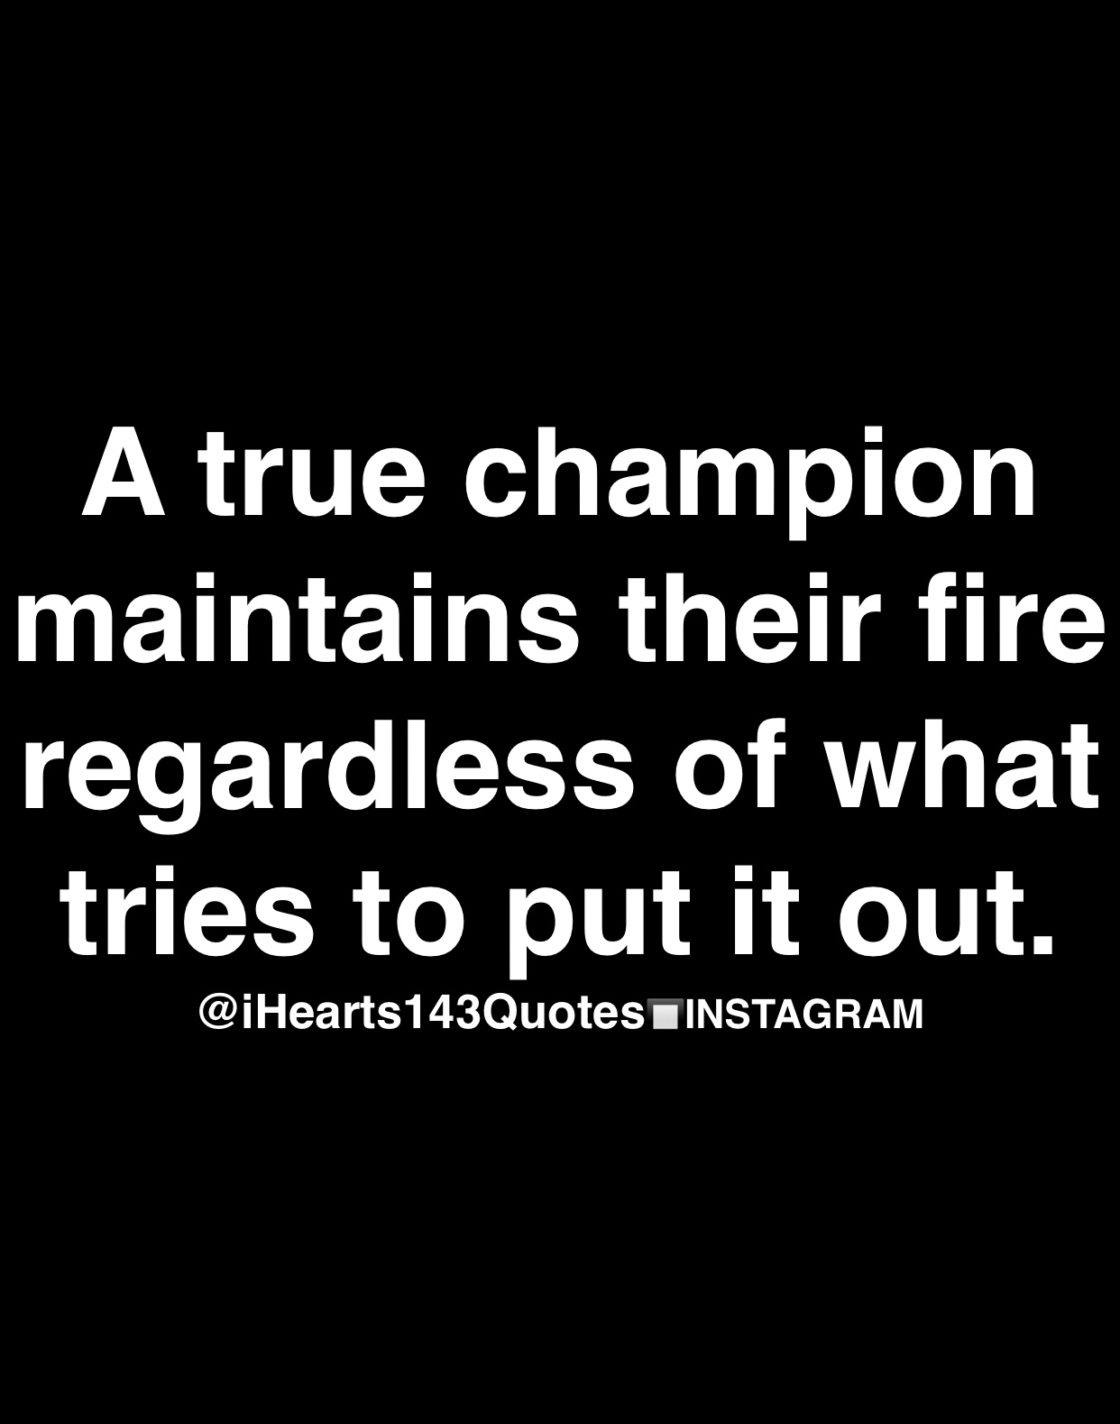 Champion Quotes   Daily Motivational Quotes Ihearts143quotes